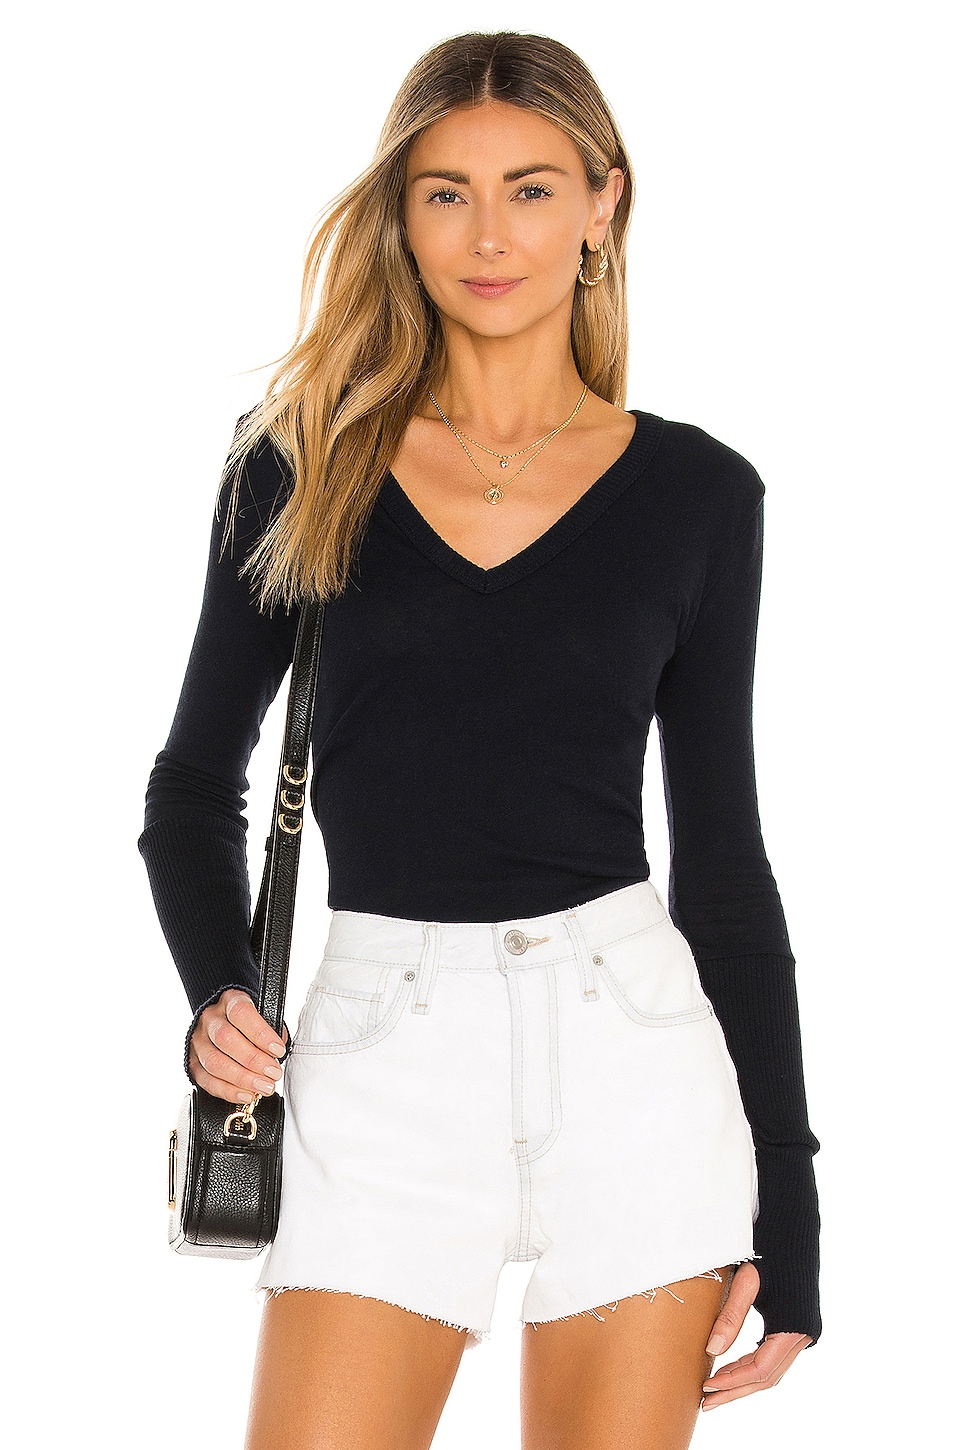 Enza Costa Cashmere Cuffed V Neck Long Sleeve Tee in Cadet